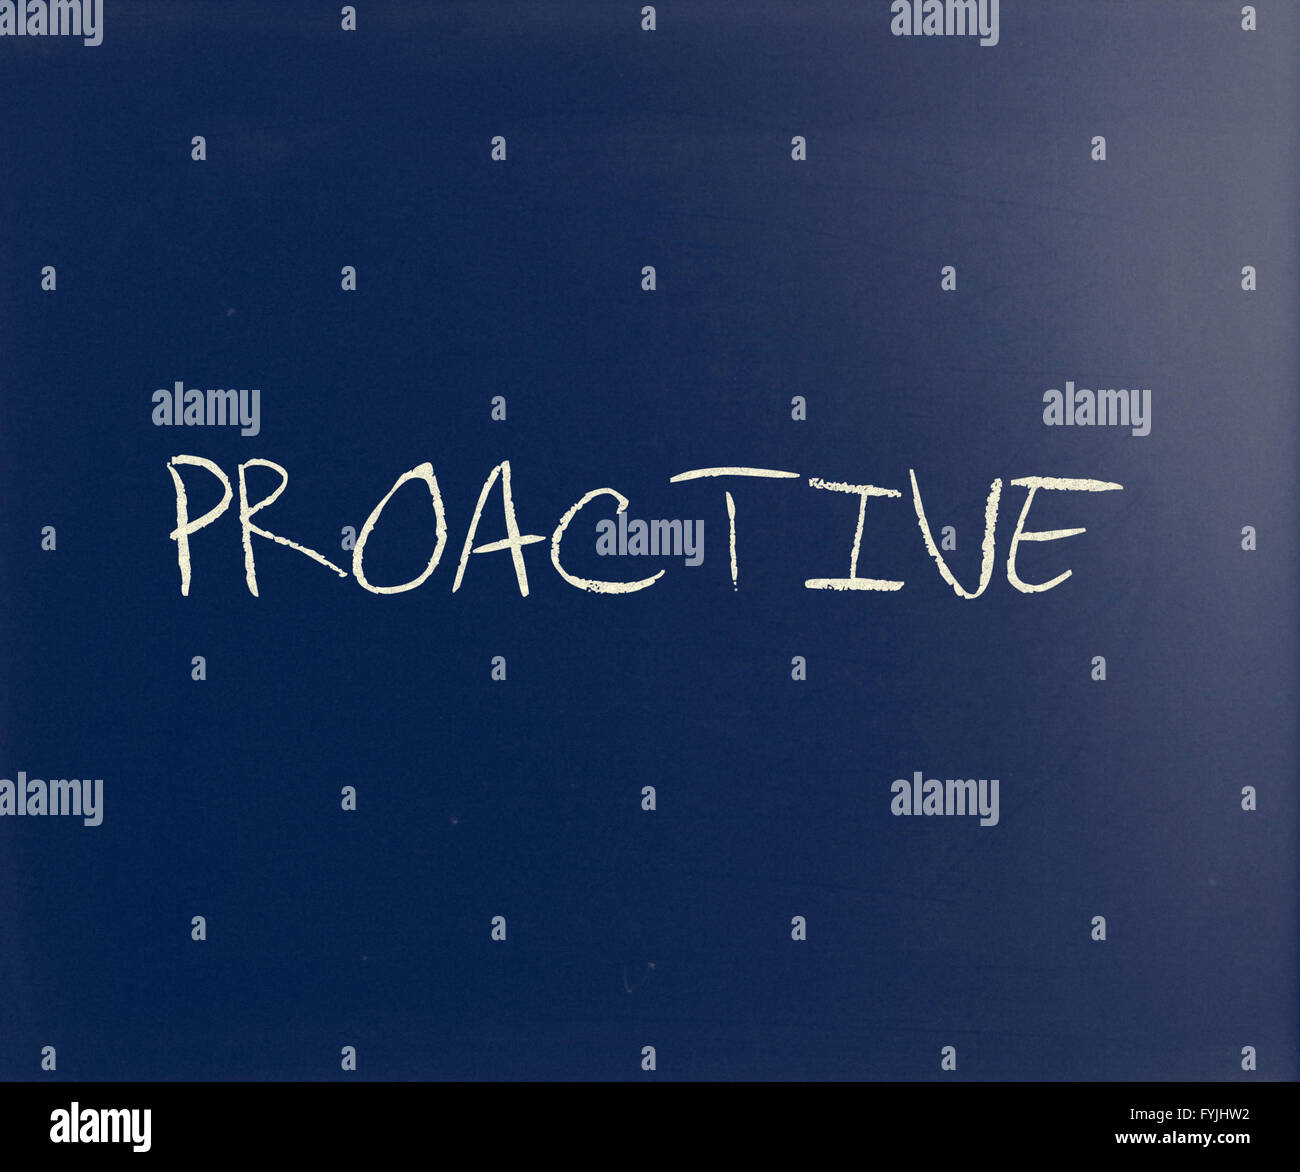 'Proactive' handwritten with white chalk on a blackboard - Stock Image